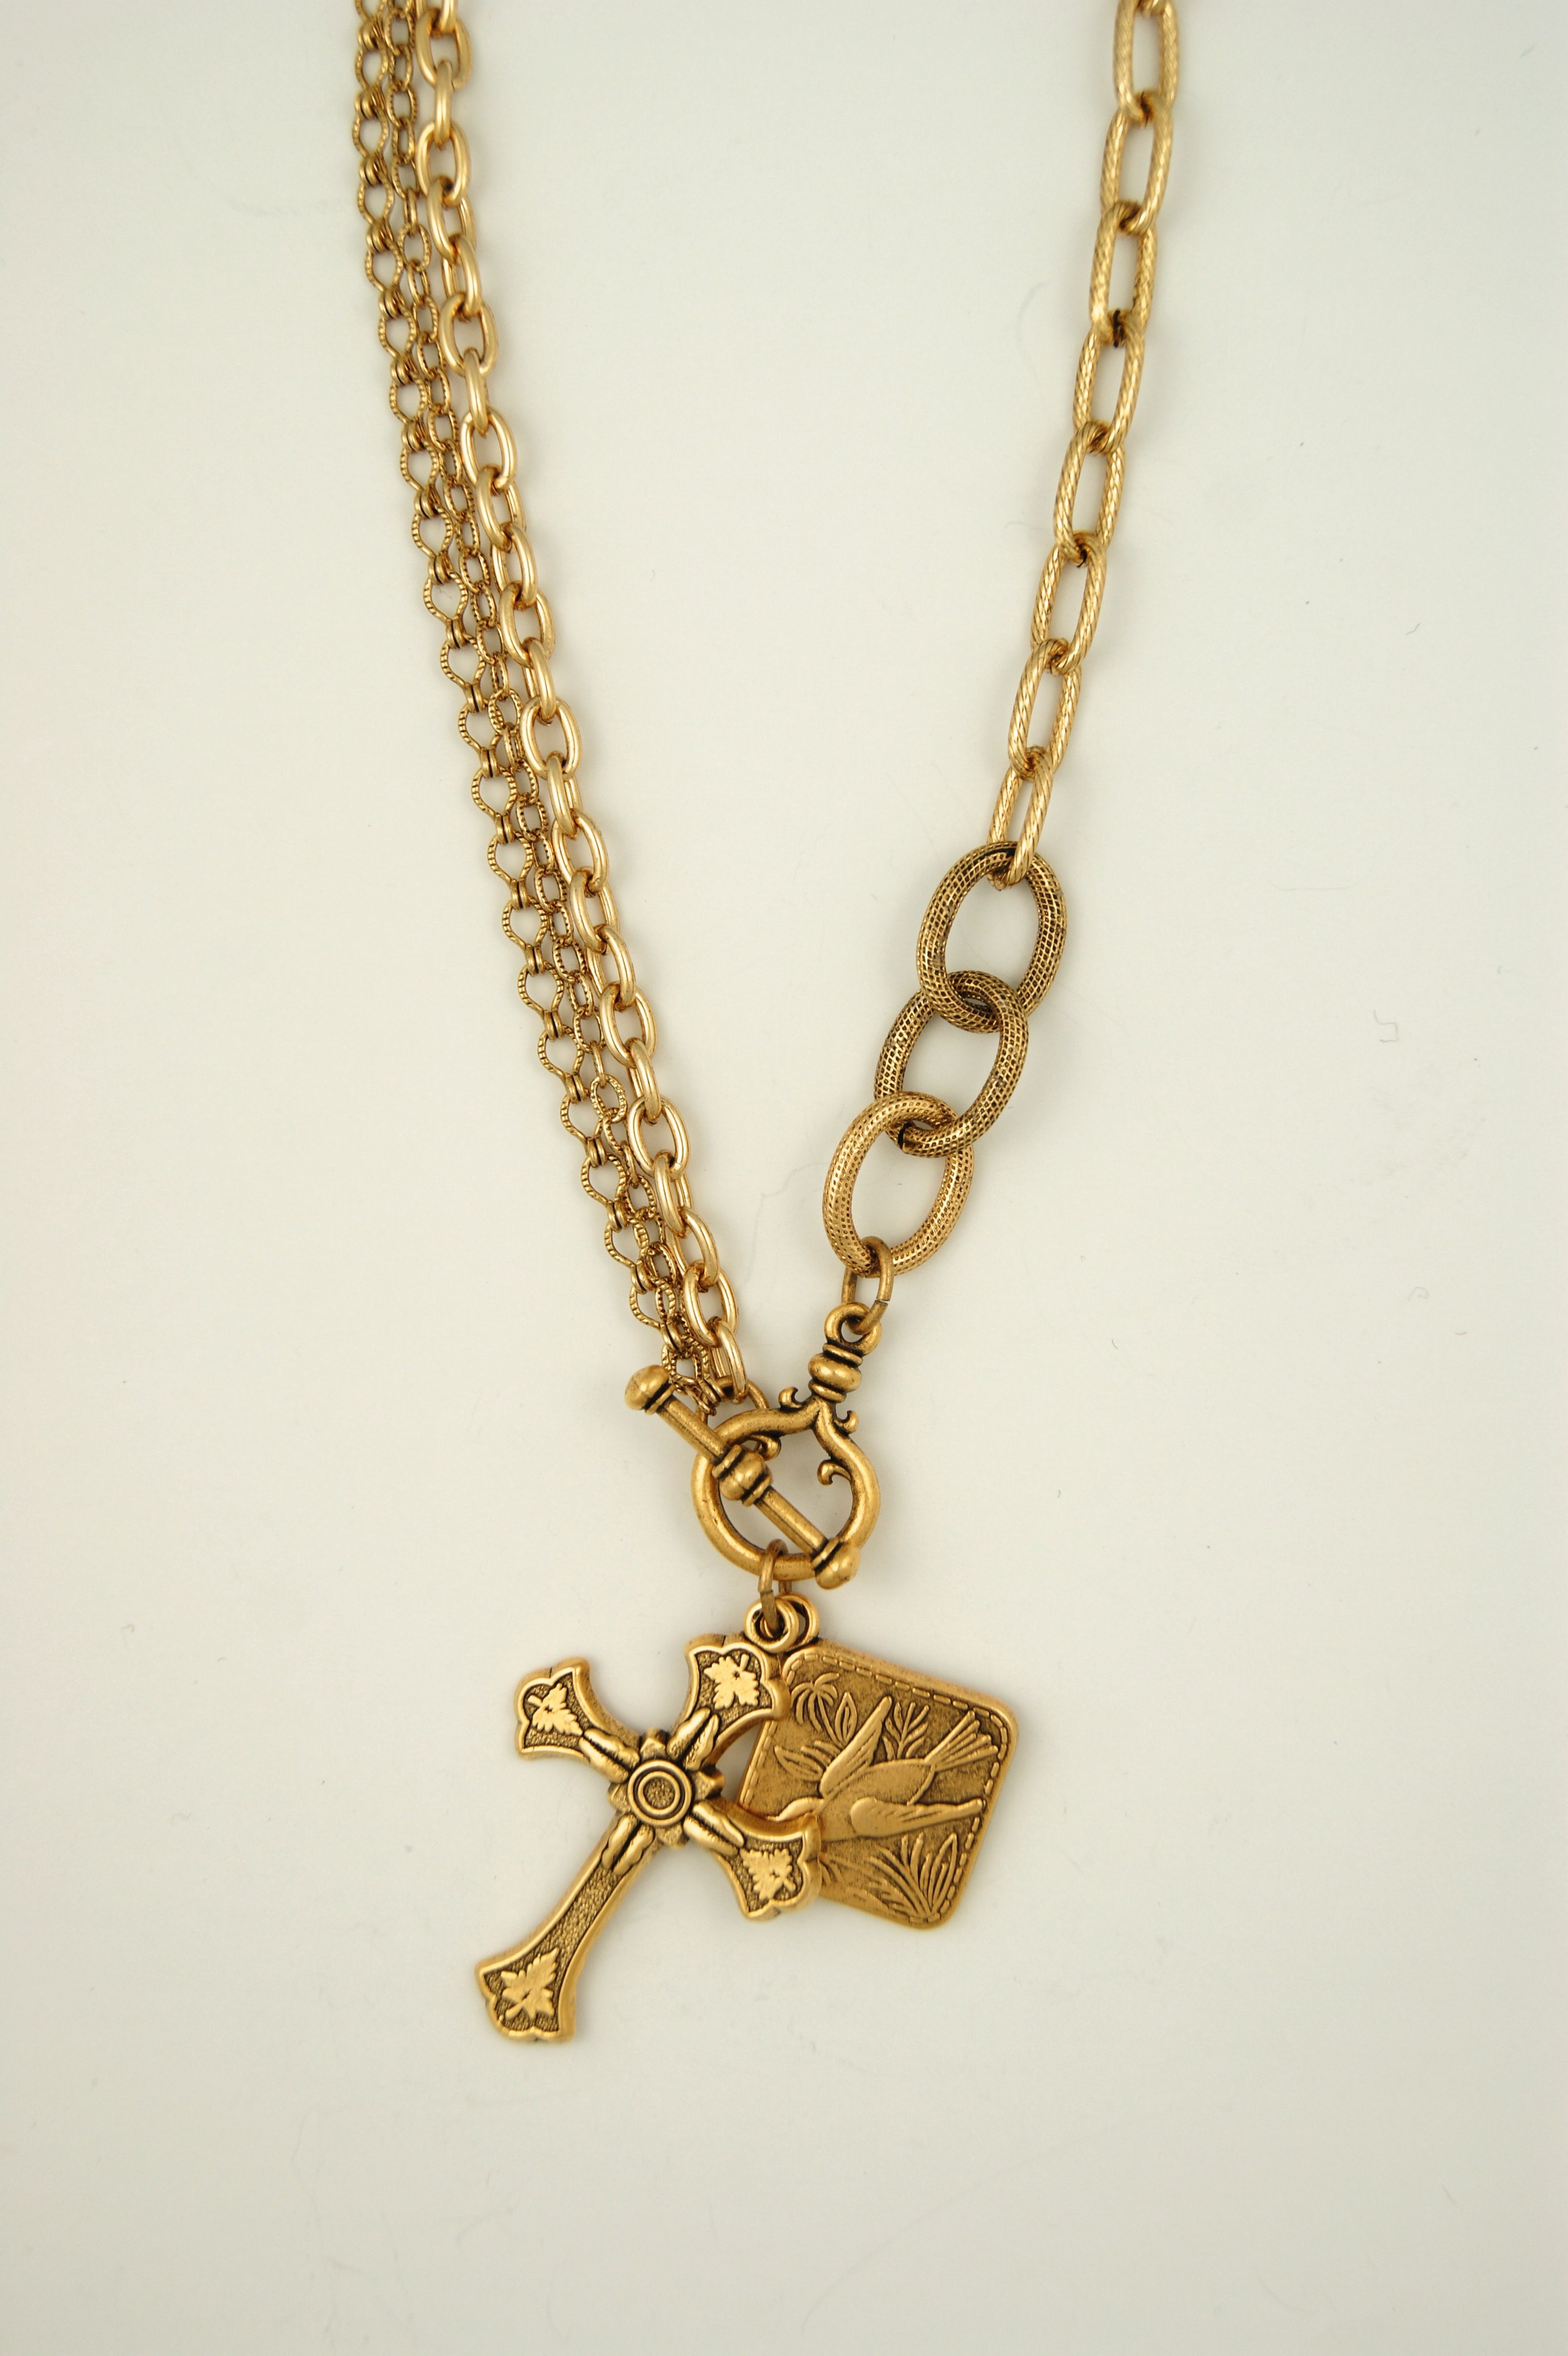 18 lulu necklace with felder cross and sparrow pendant ex voto 18 lulu necklace with felder cross and sparrow pendant aloadofball Images